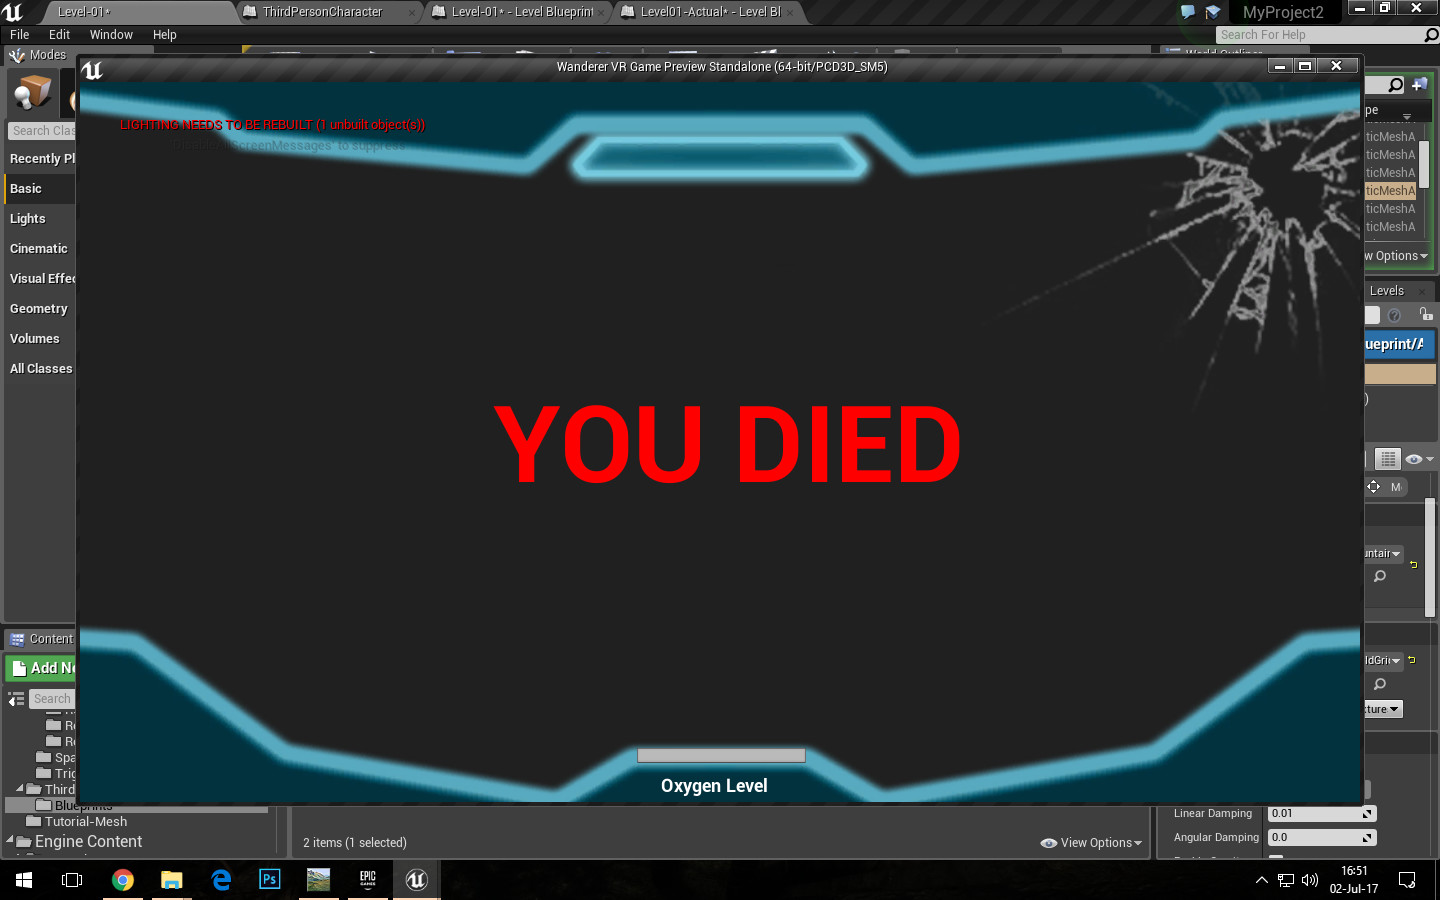 HUD - Death Screen